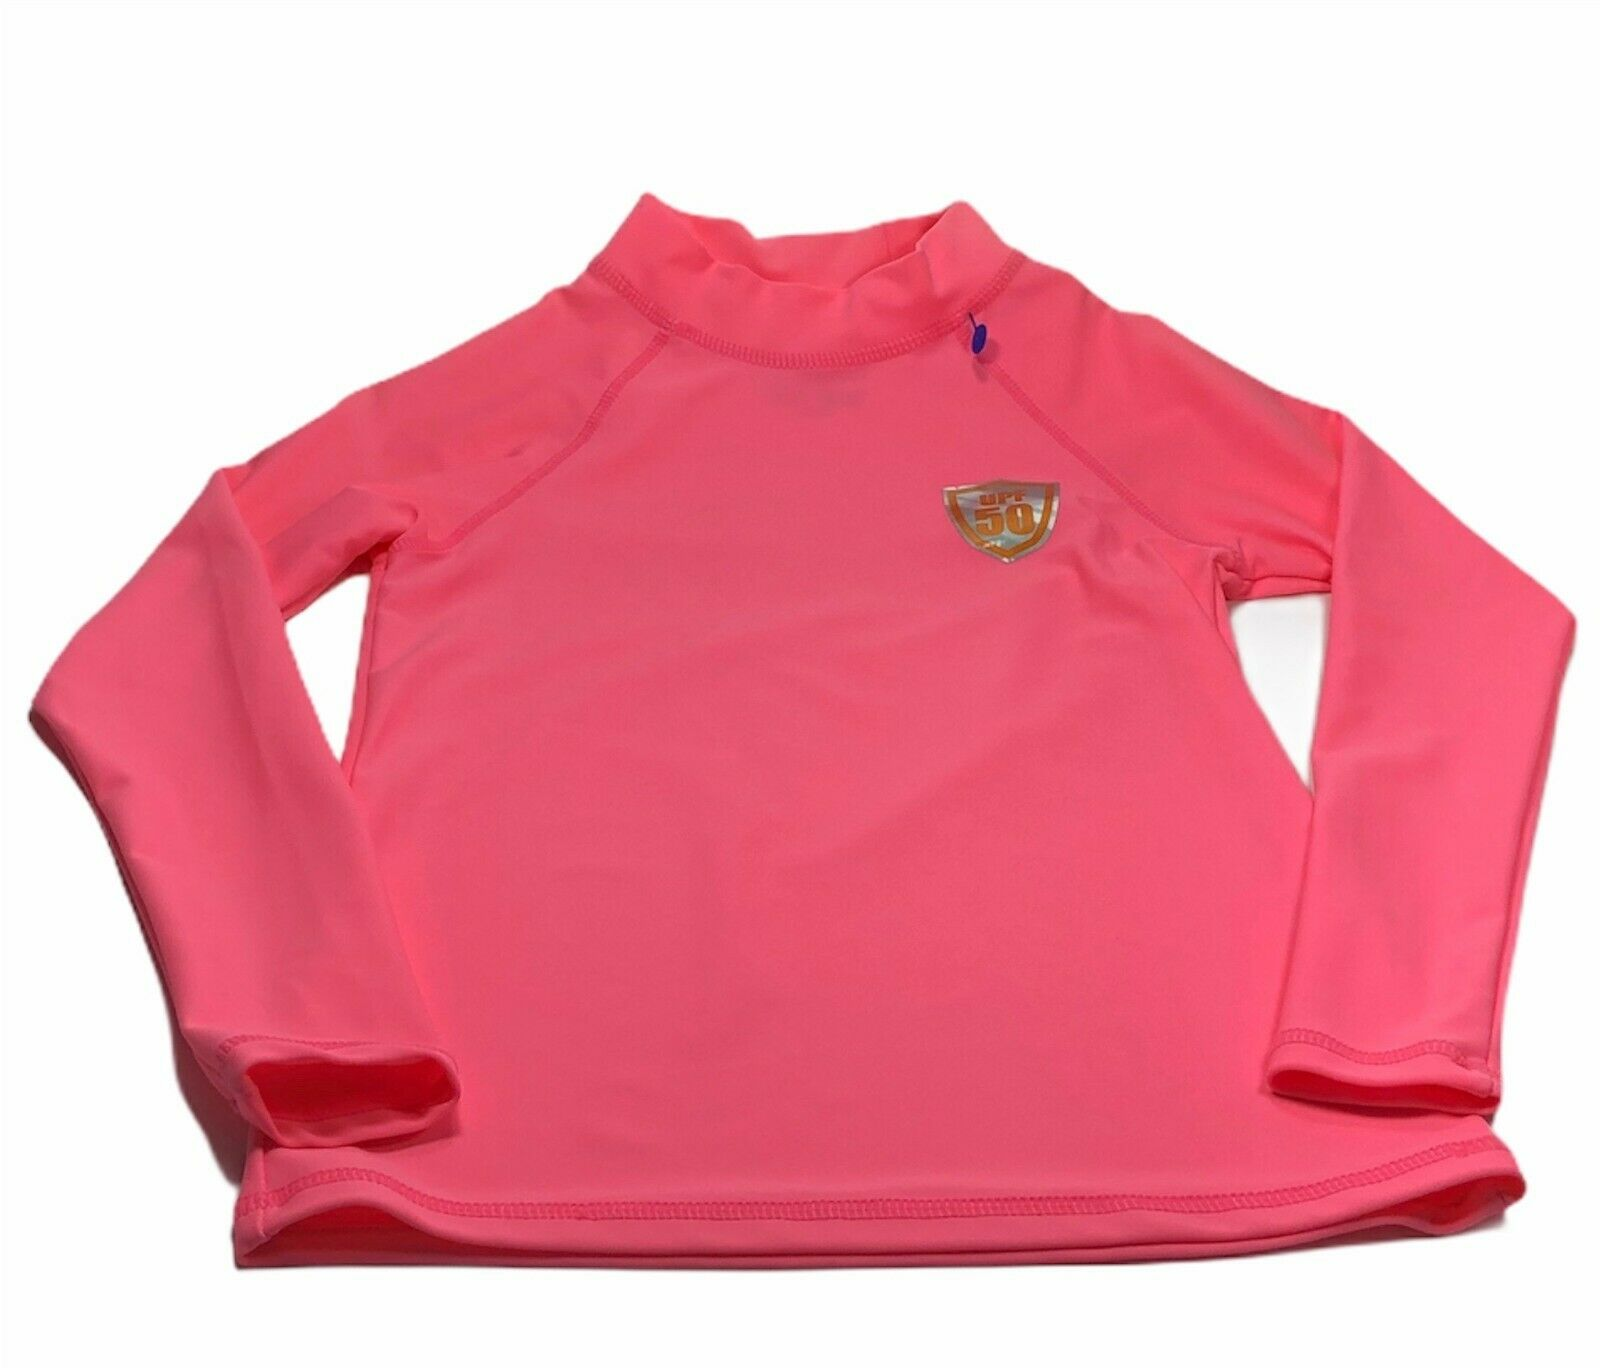 Ingear Swim Girls Long Sleeve Rash Guard UPF 50 Pink Surf Sh